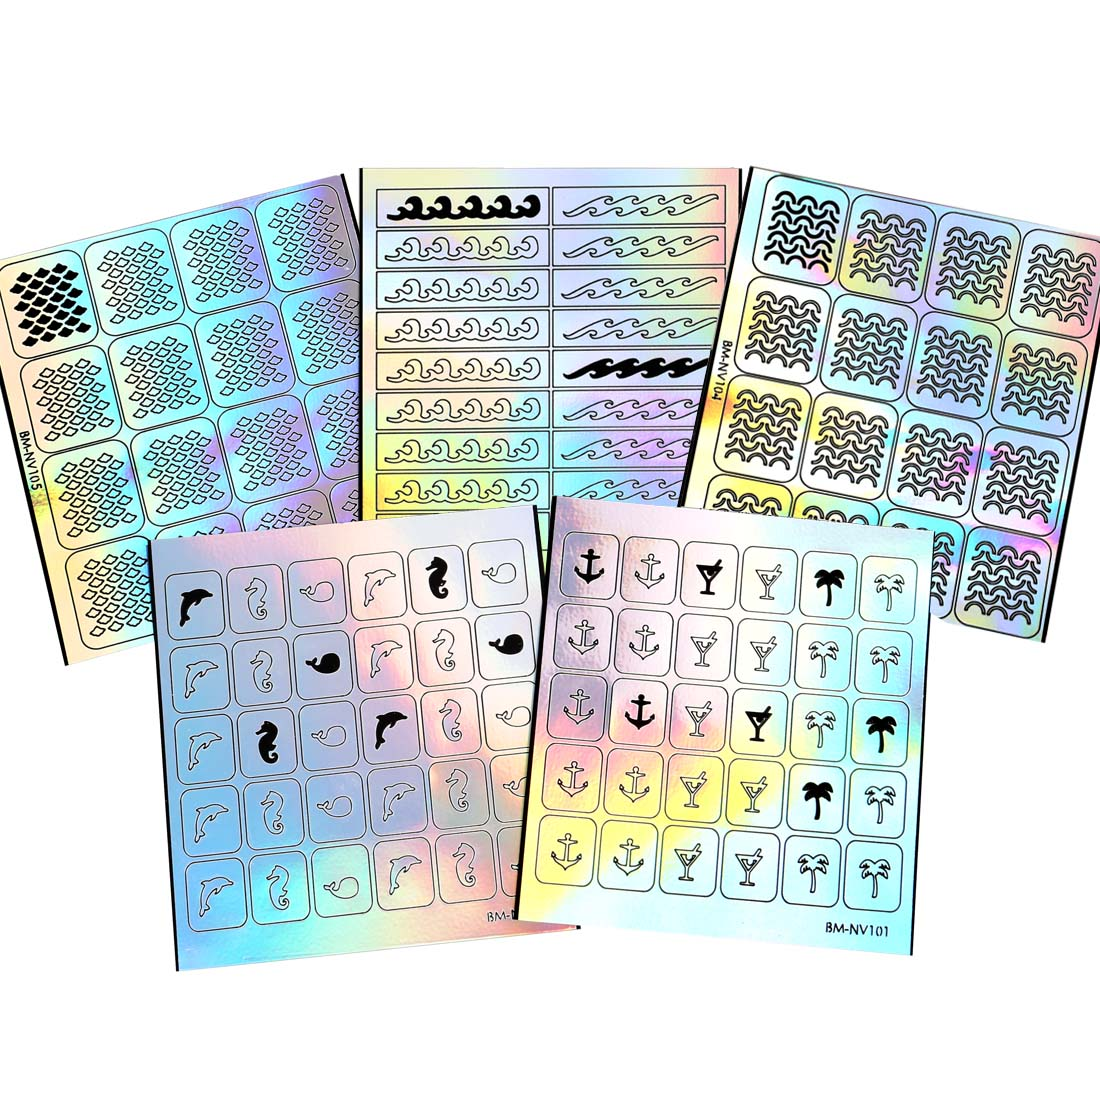 Maniology (formerly bmc) 5 Sheet Holographic Nail Art Vinyl Sticker Guides - Beach Collection